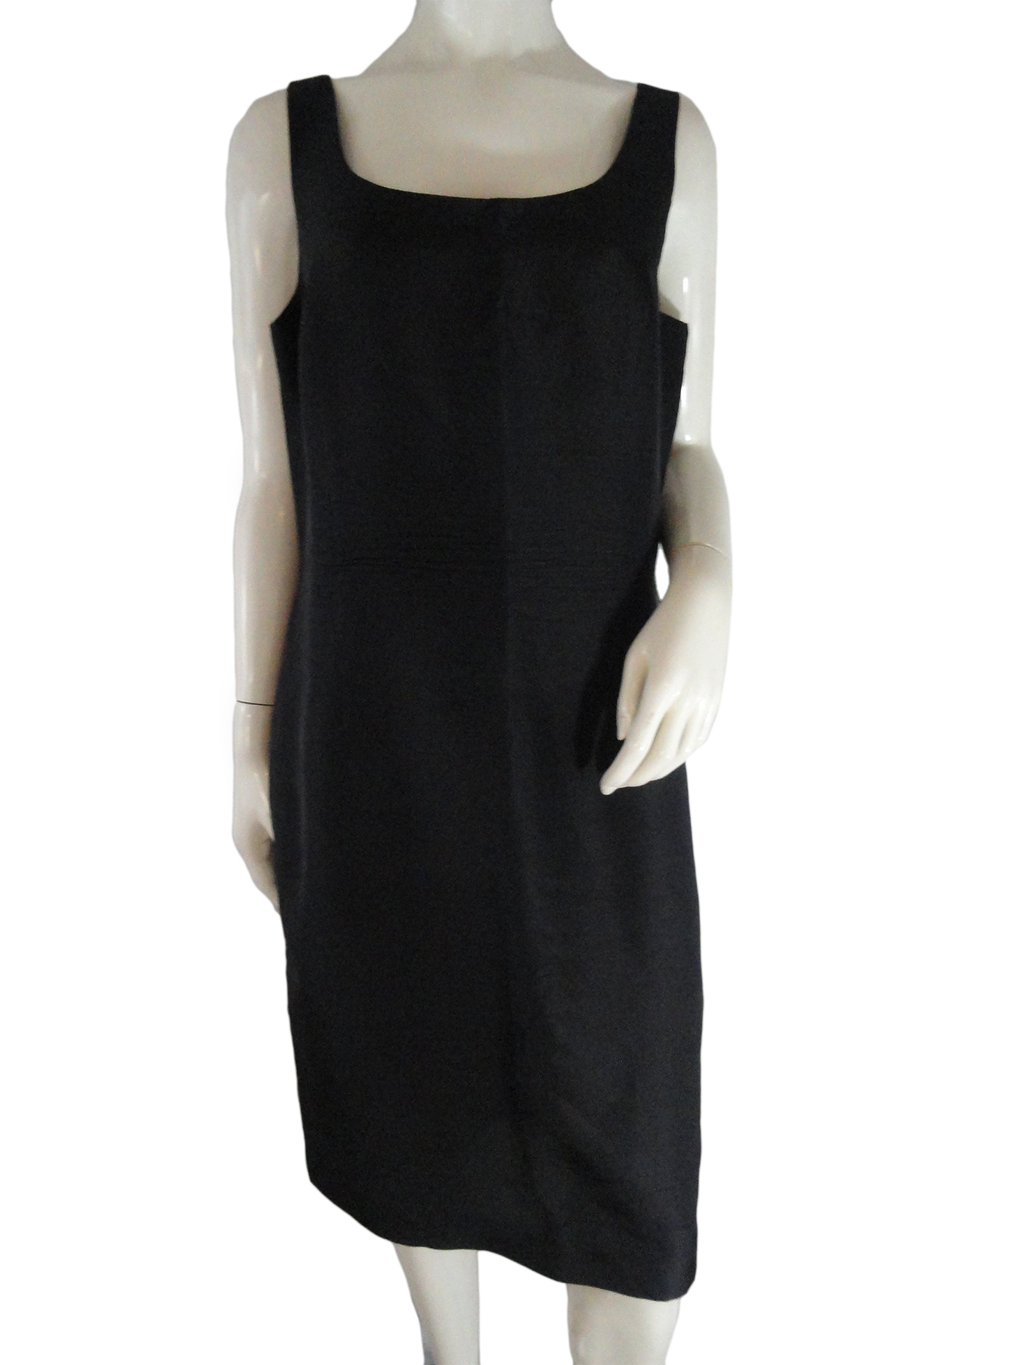 Liz Claiborne Dress Black Size 14 (SKU 000268-6)